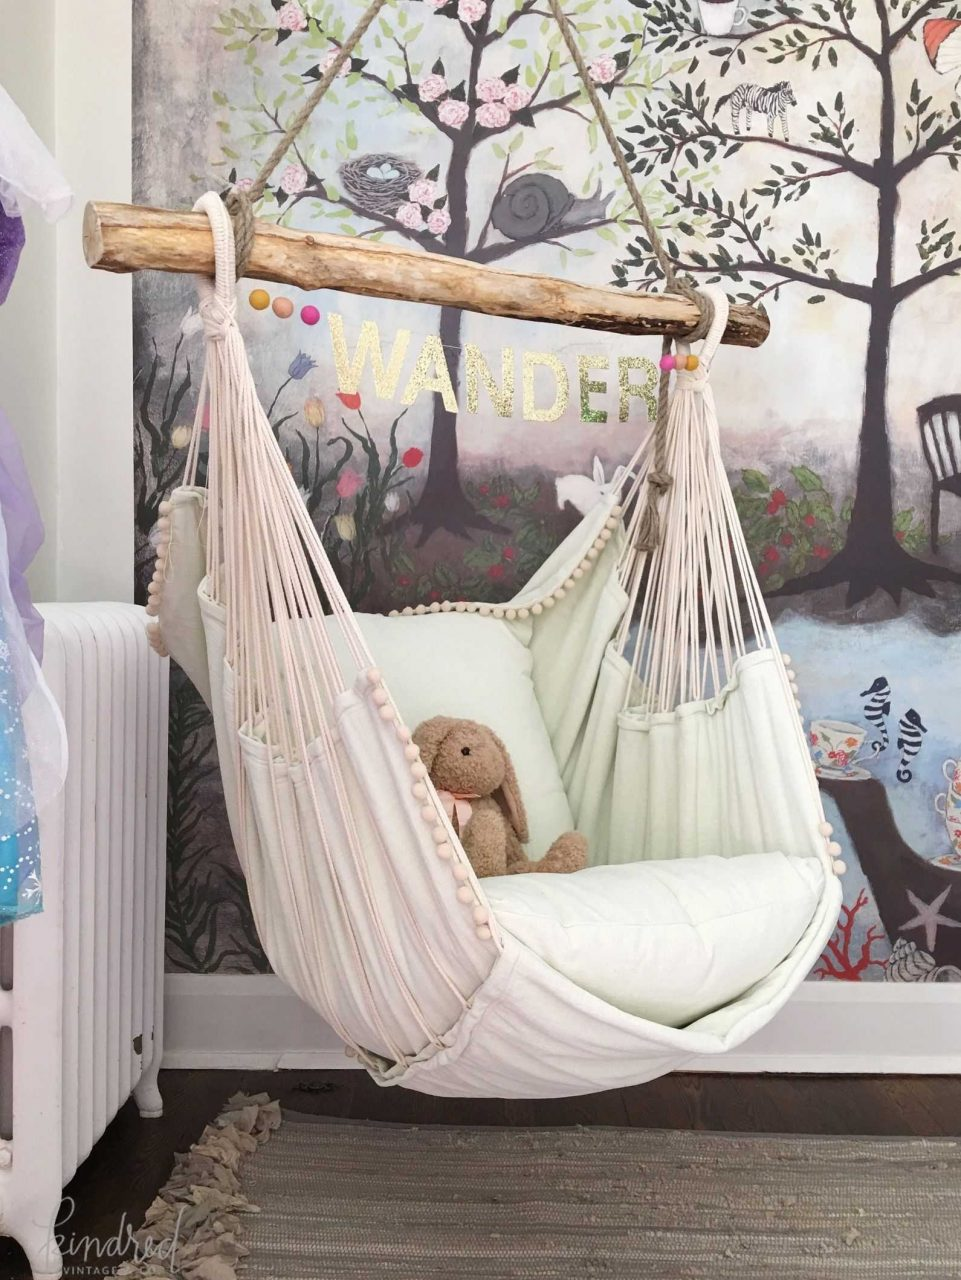 Hanging Hammock Chair For Collection And Outstanding Bedroom Ideas